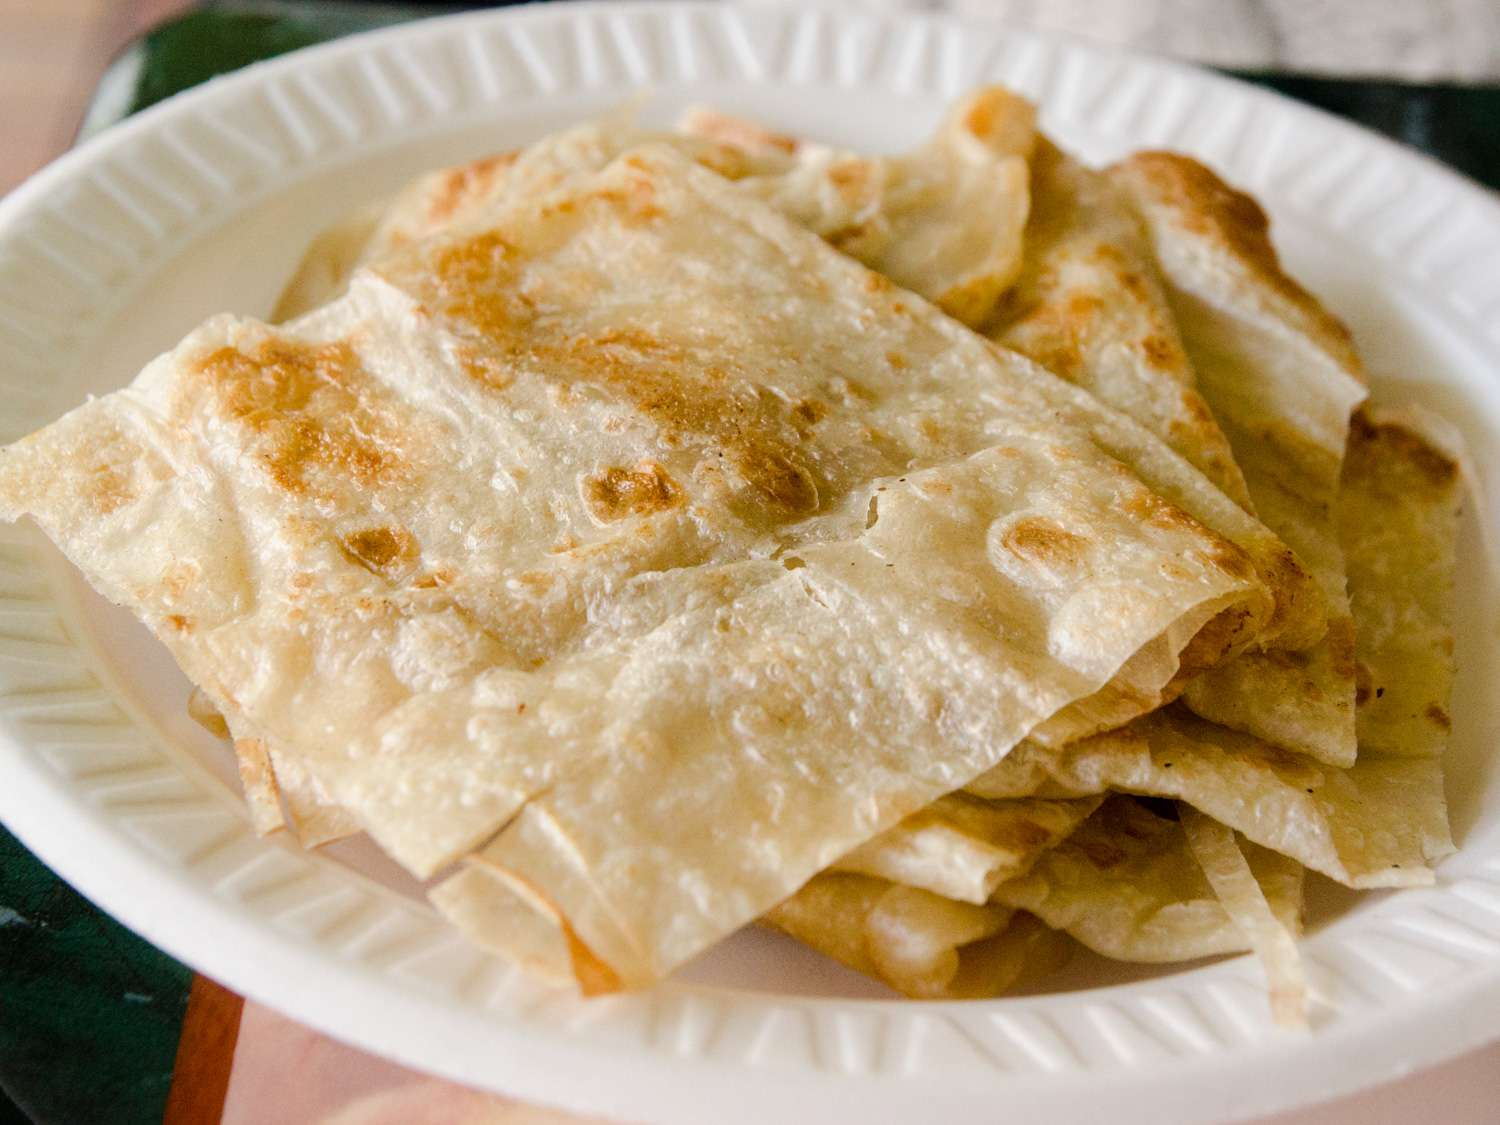 A small plate with a stack of roti.